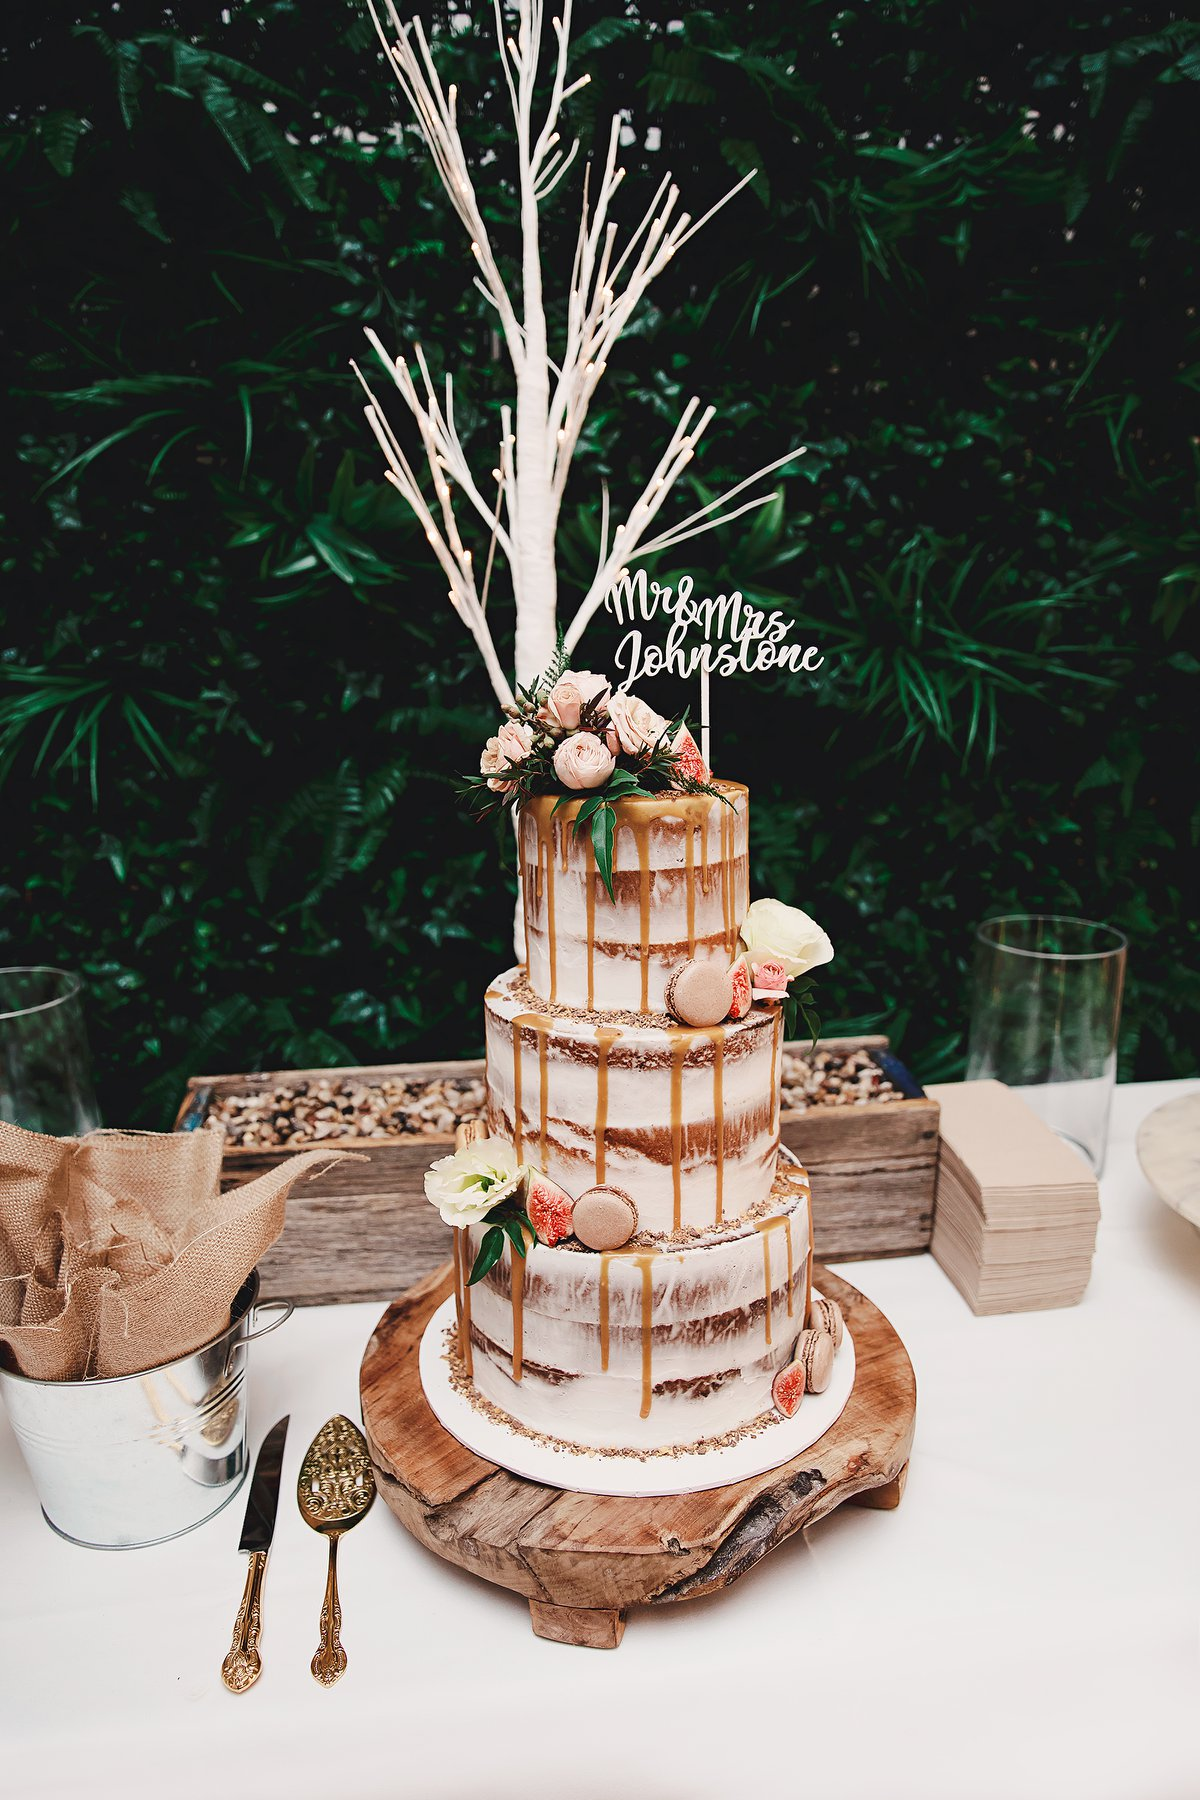 Wedding Cake Styled and Green Wall Manly.jpg